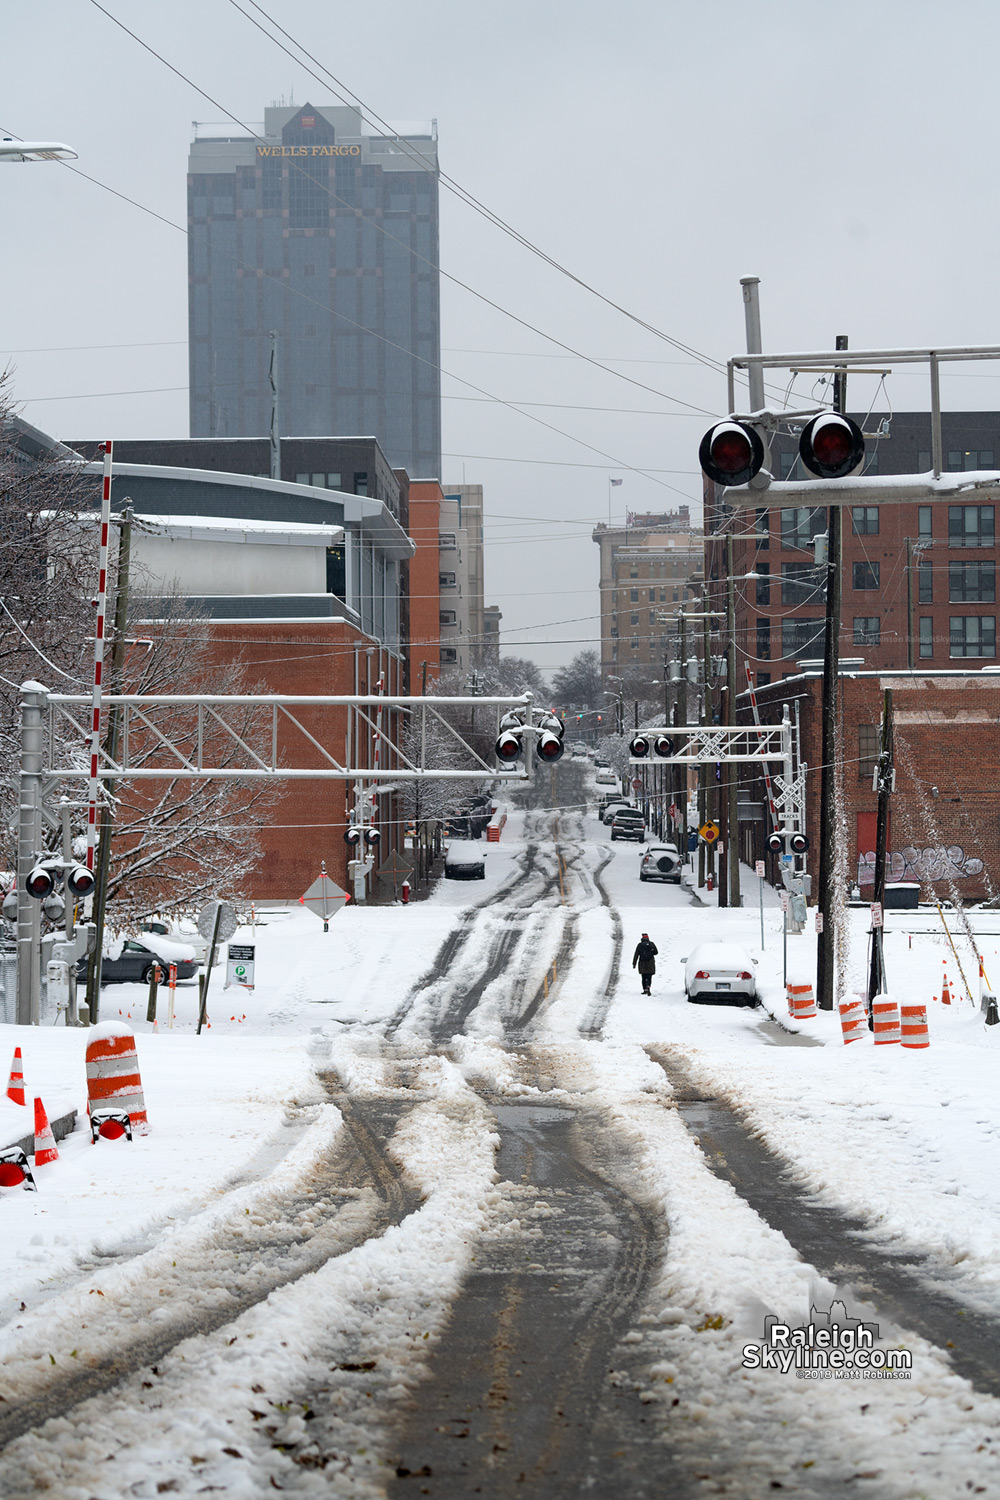 Hargett Street in Raleigh with snow